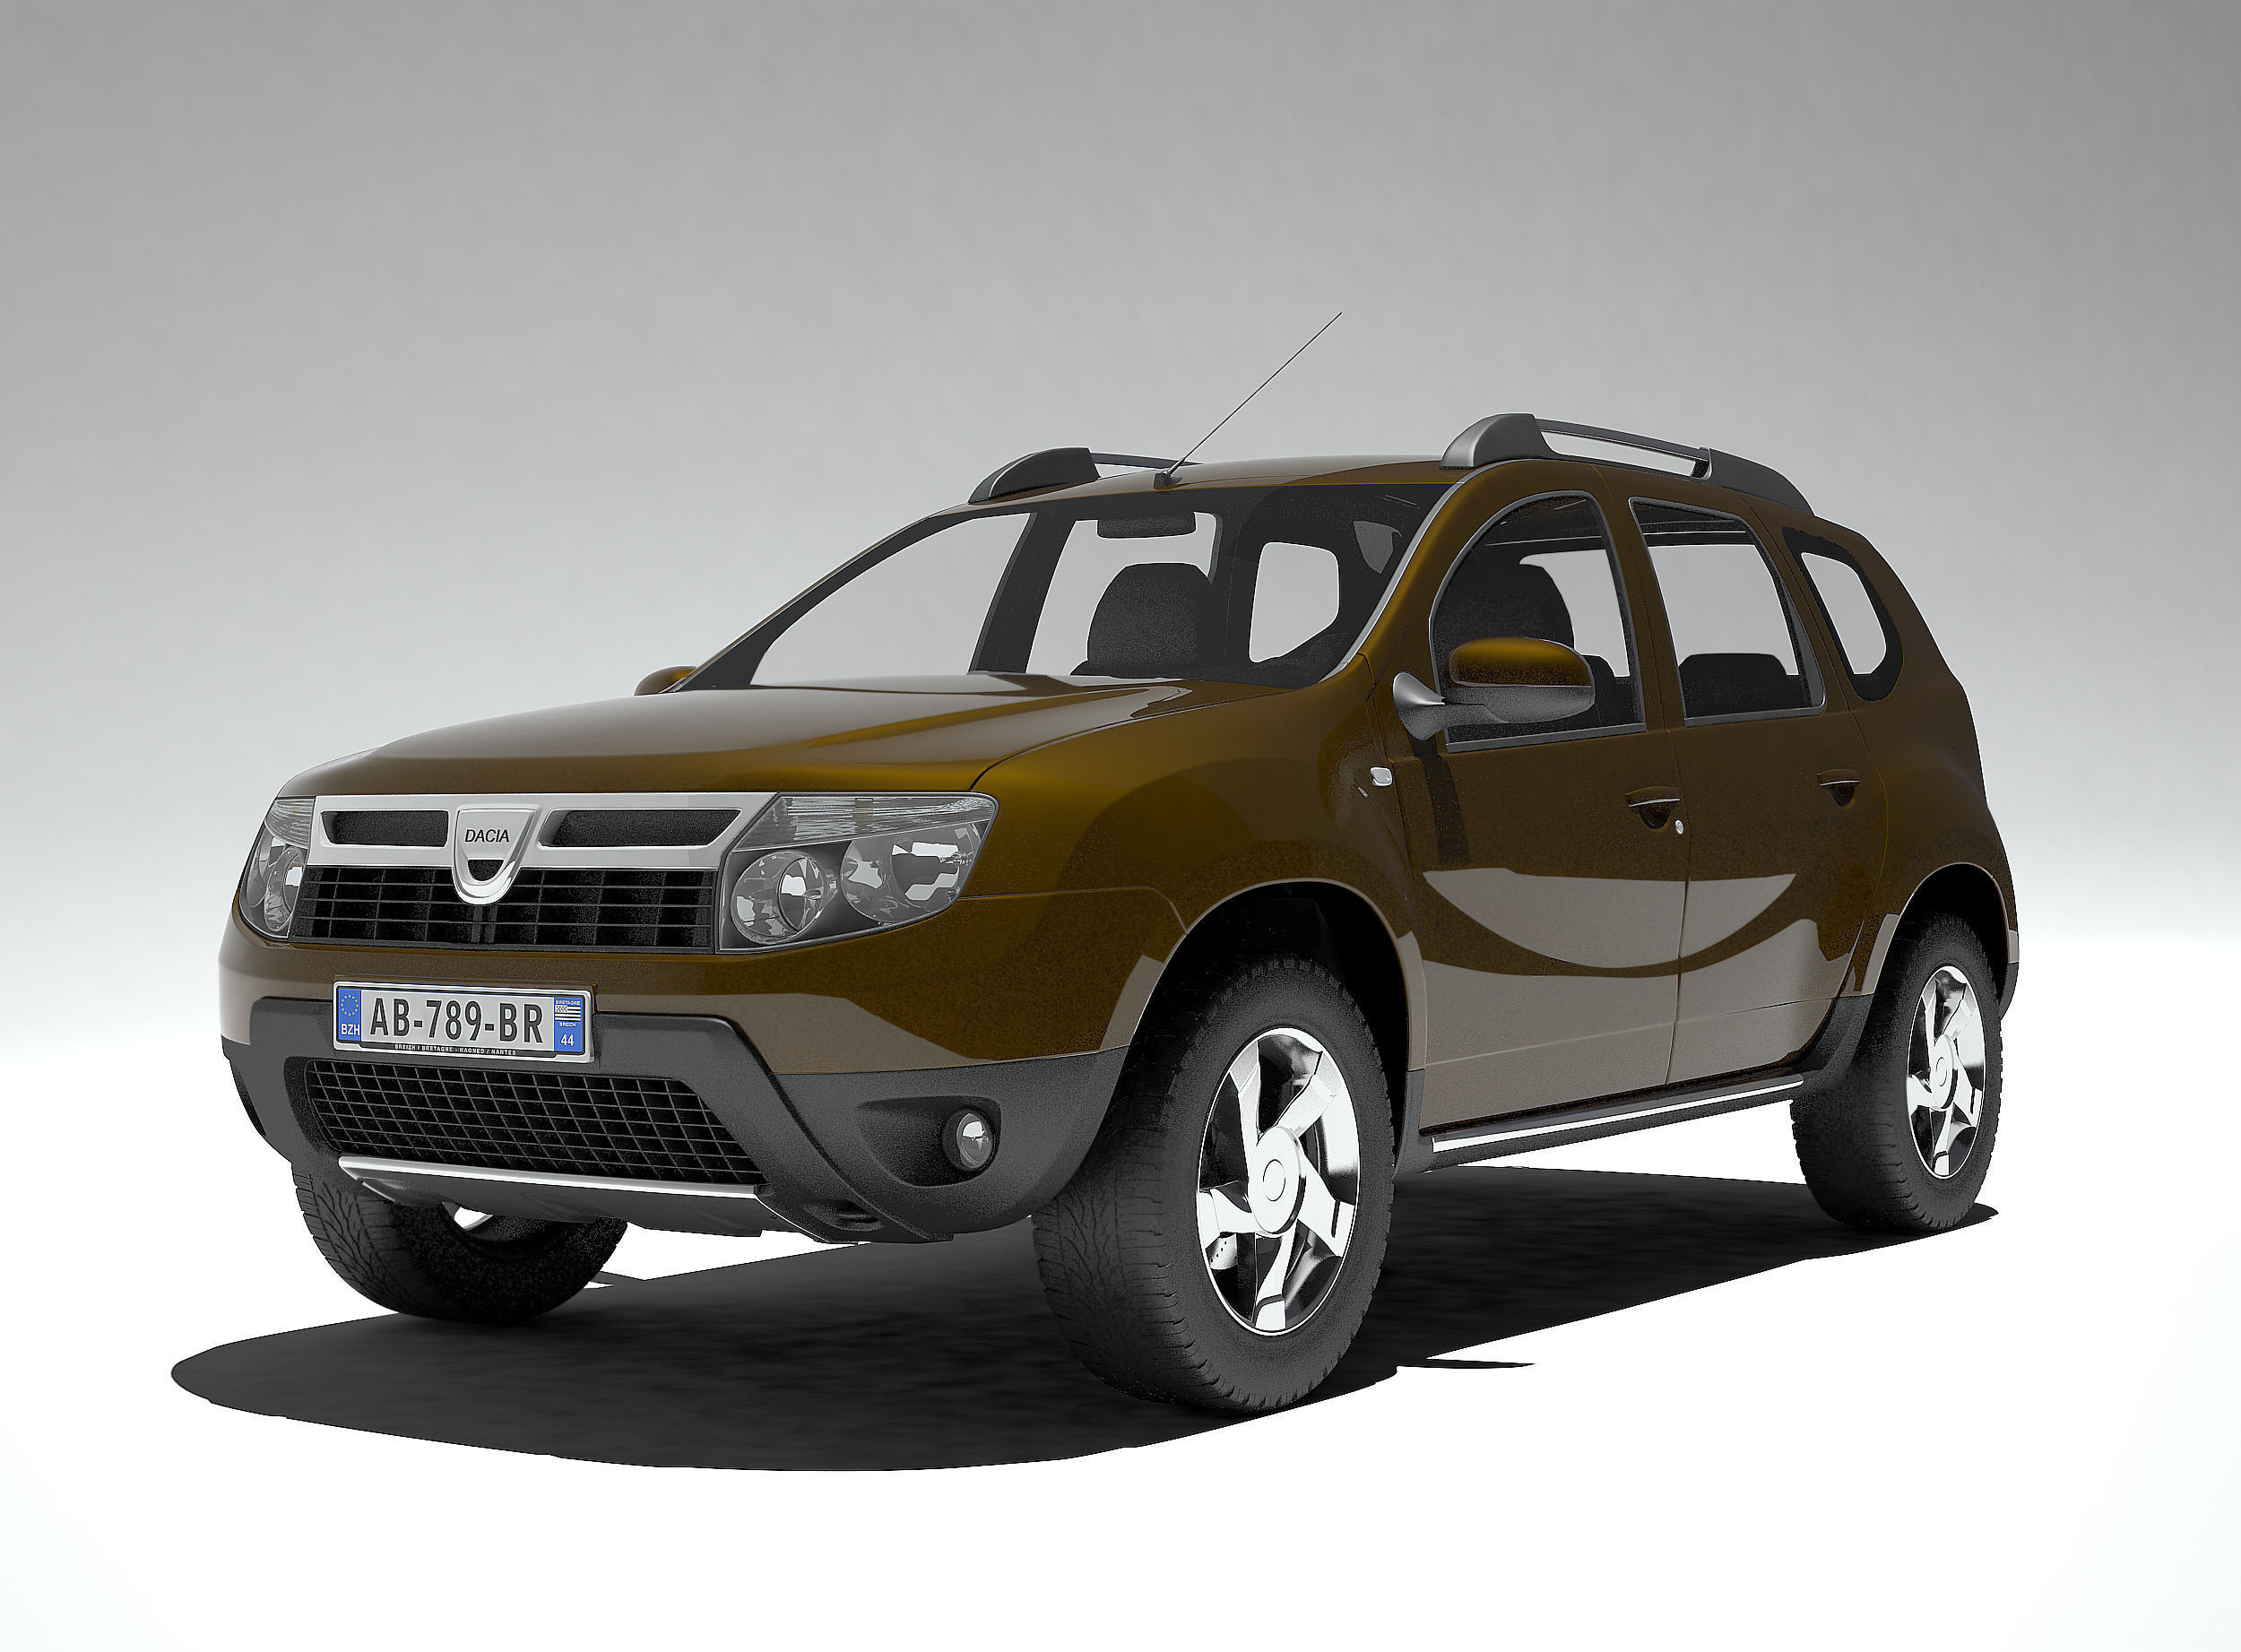 duster dacia renault 3d model max obj fbx wrl wrz mtl. Black Bedroom Furniture Sets. Home Design Ideas